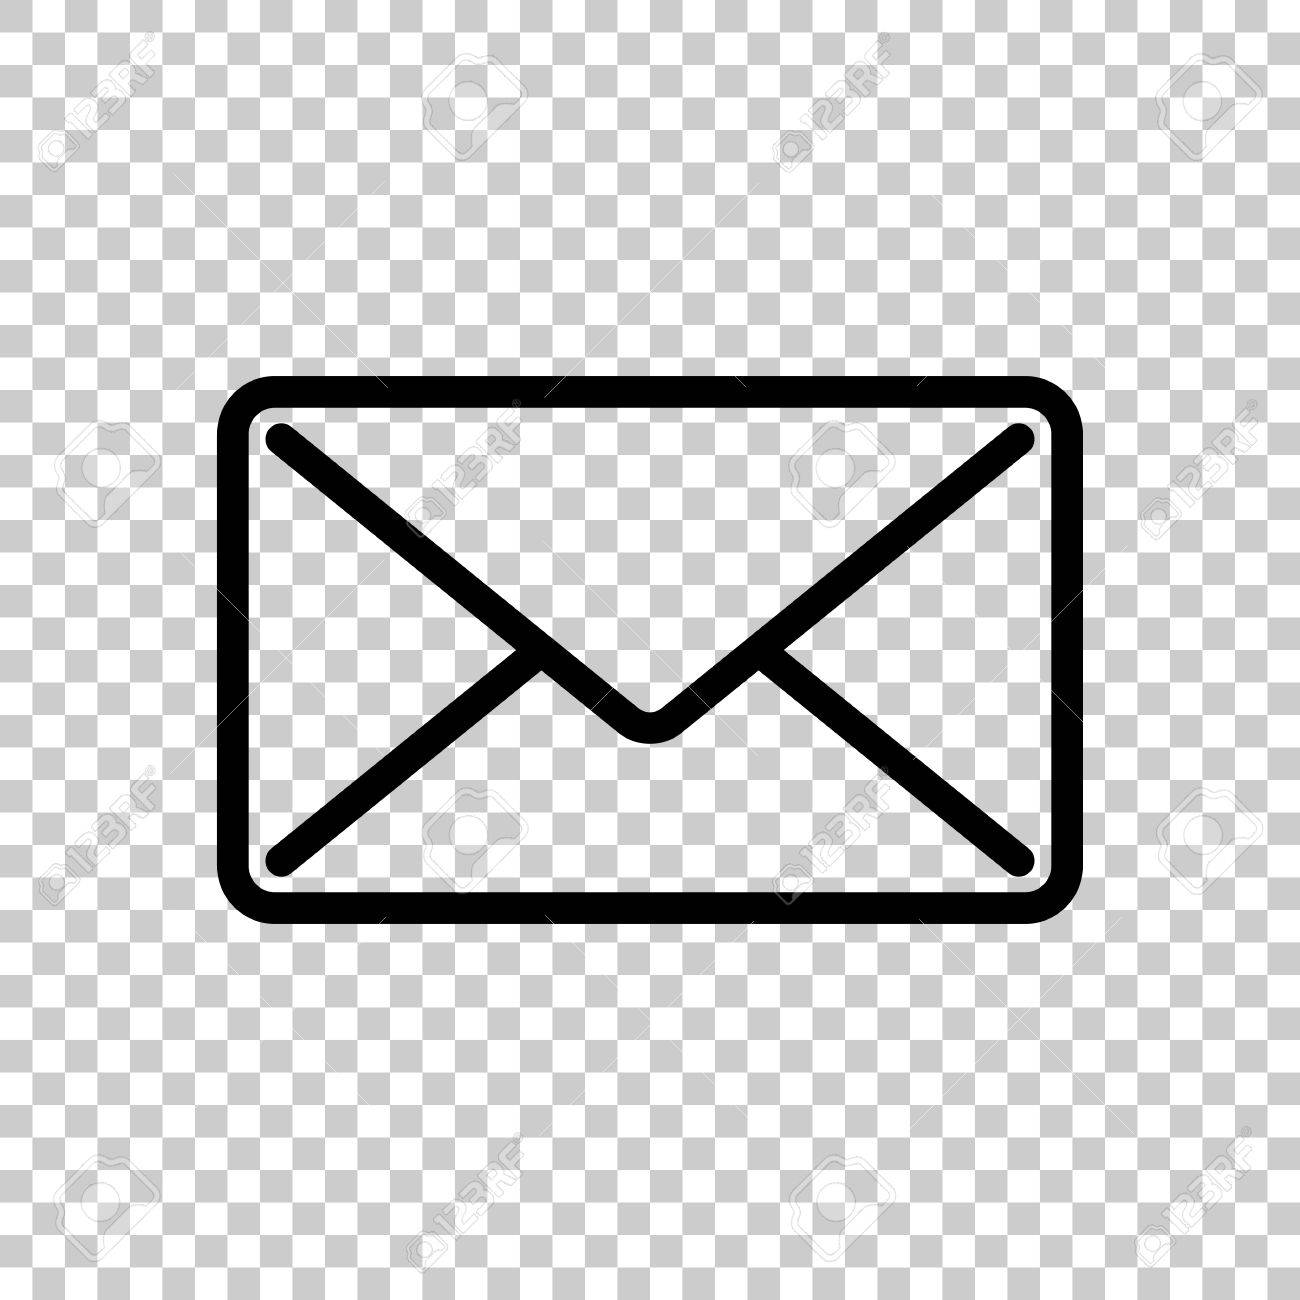 mail close icon black icon on transparent background royalty free